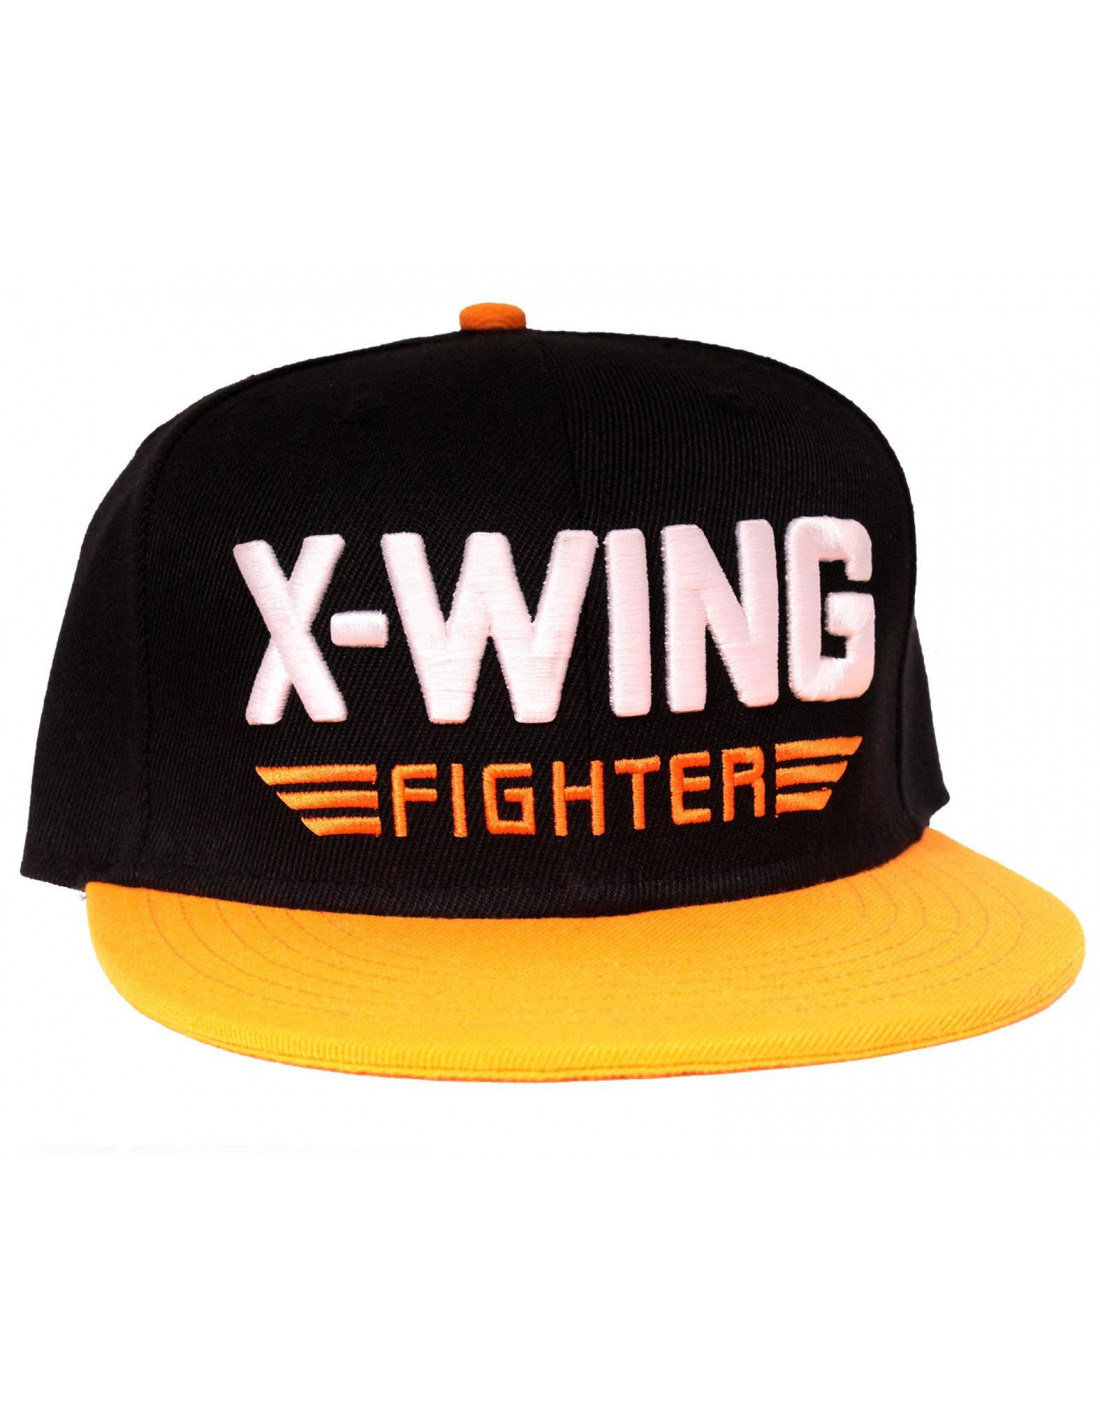 57ba7216a1c356 Casquette snapback Star Wars VII - X-Wing Fighter - Legend Icon